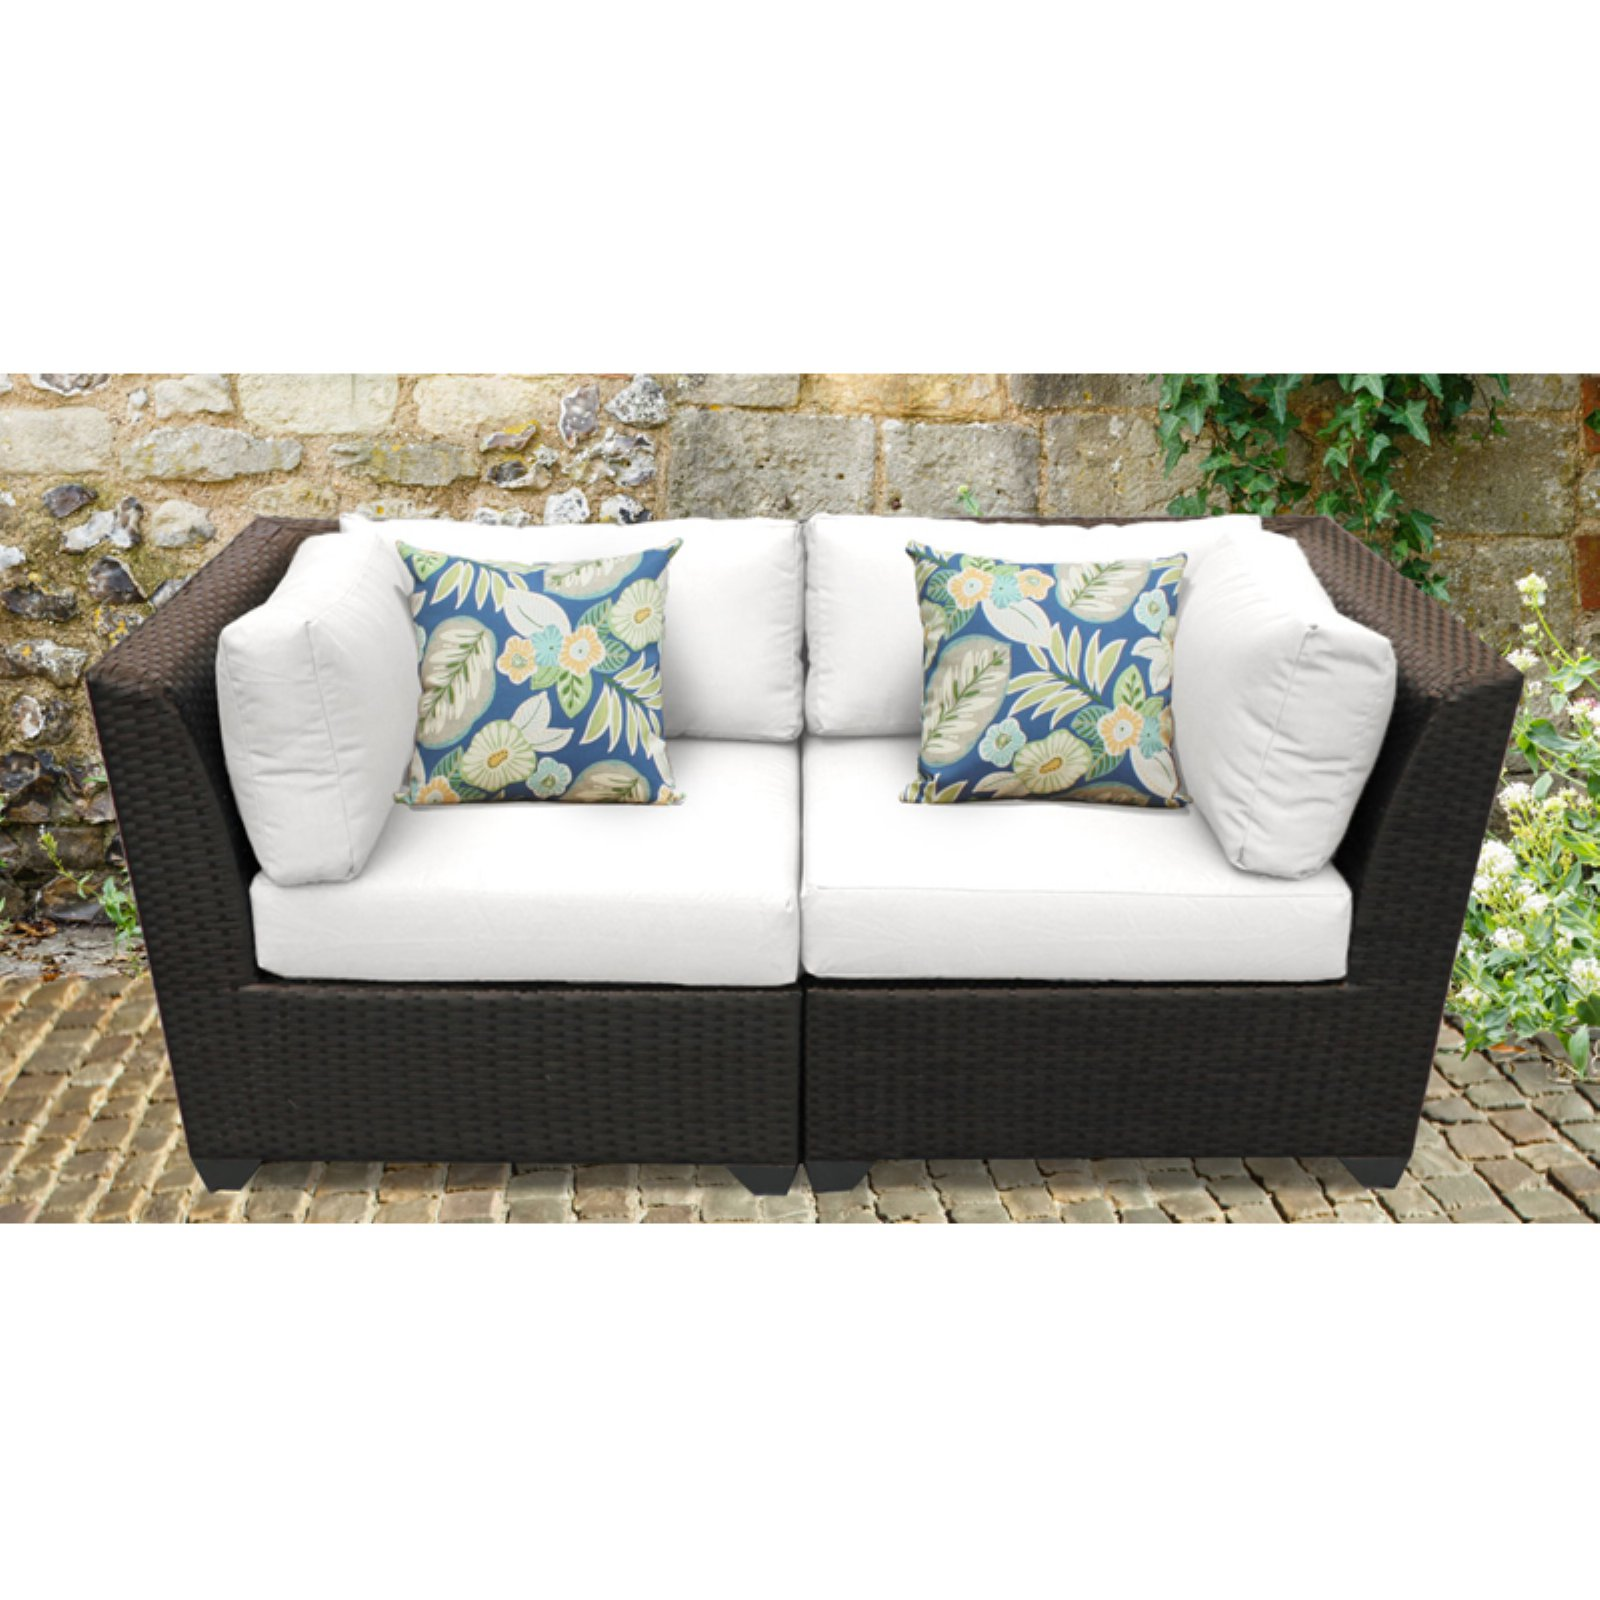 TK Classics Barbados 02A Outdoor Sofa